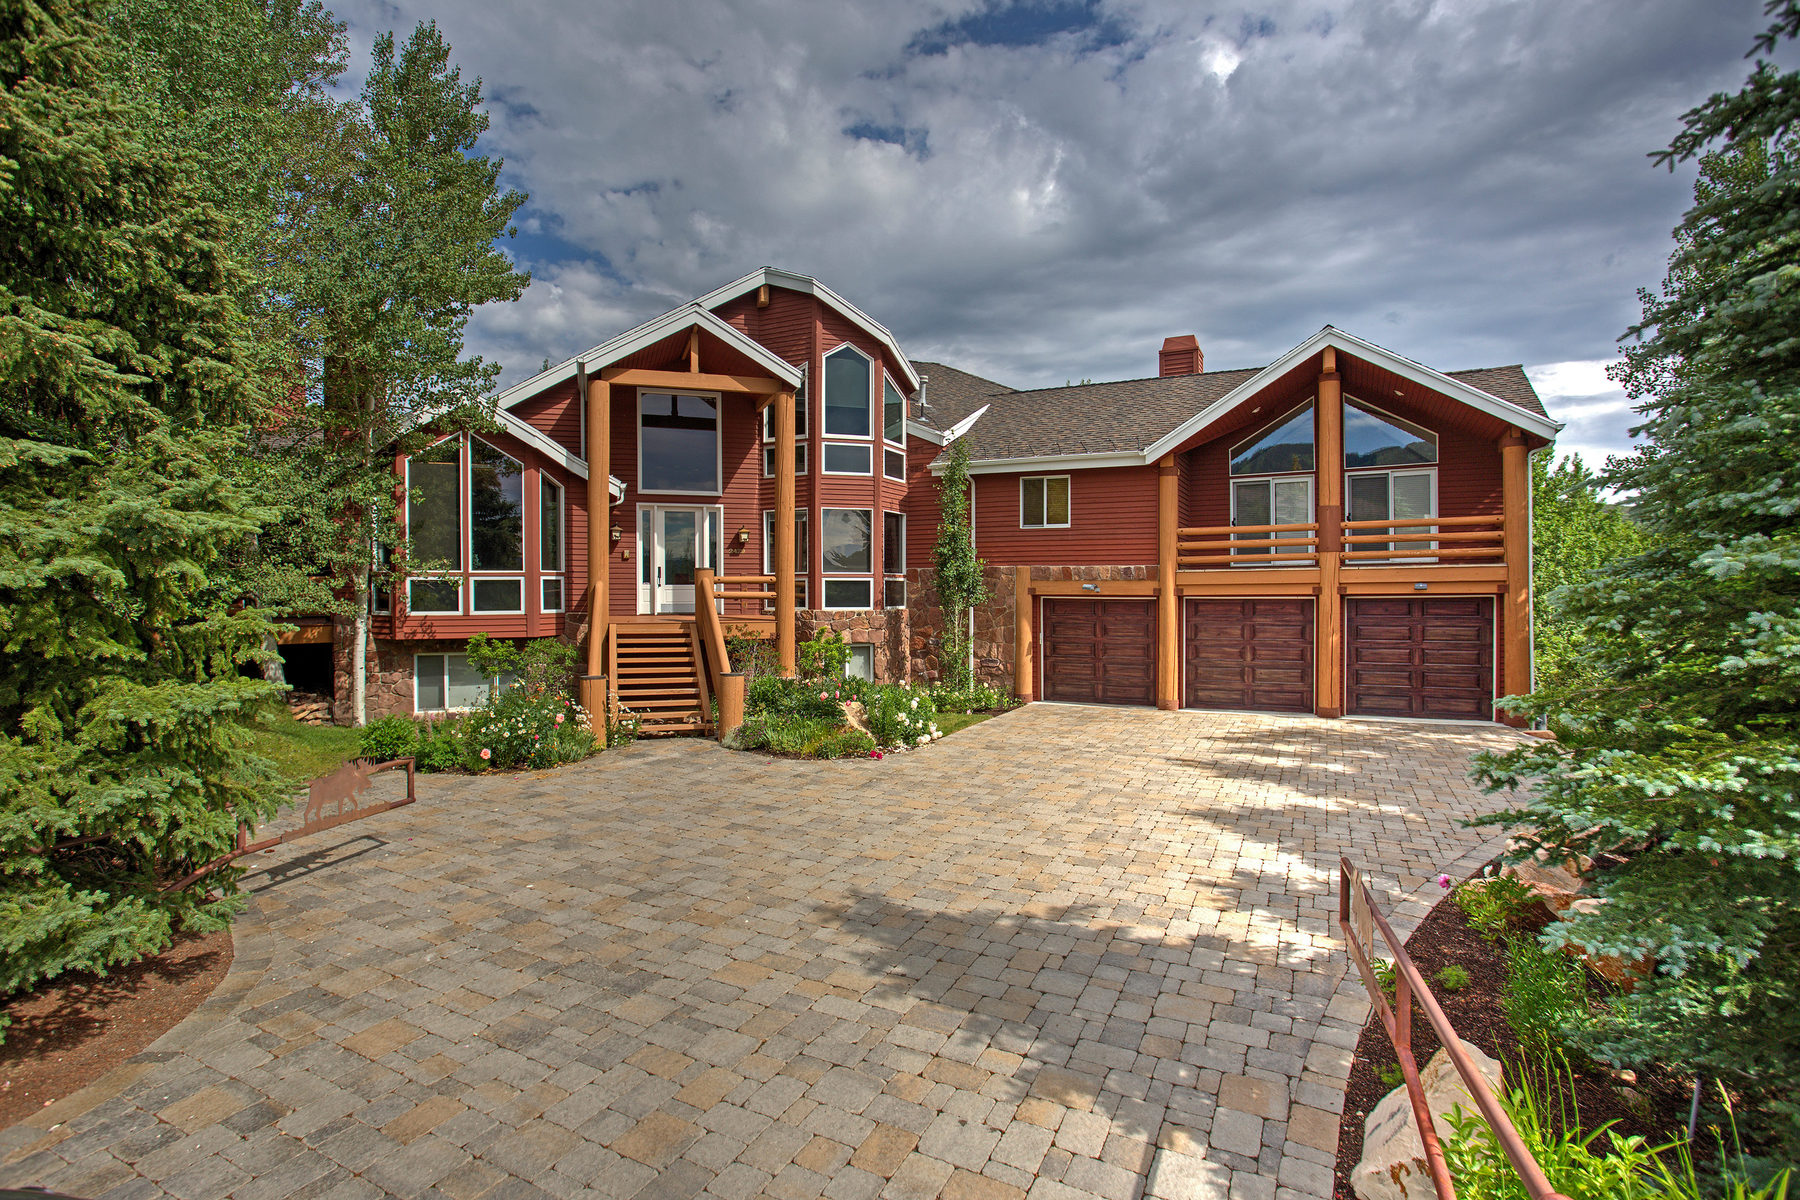 Single Family Home for Sale at Seclusion and Views in a Prestigious Neighborhood 2429 Iron Canyon Dr Park City, Utah 84060 United States